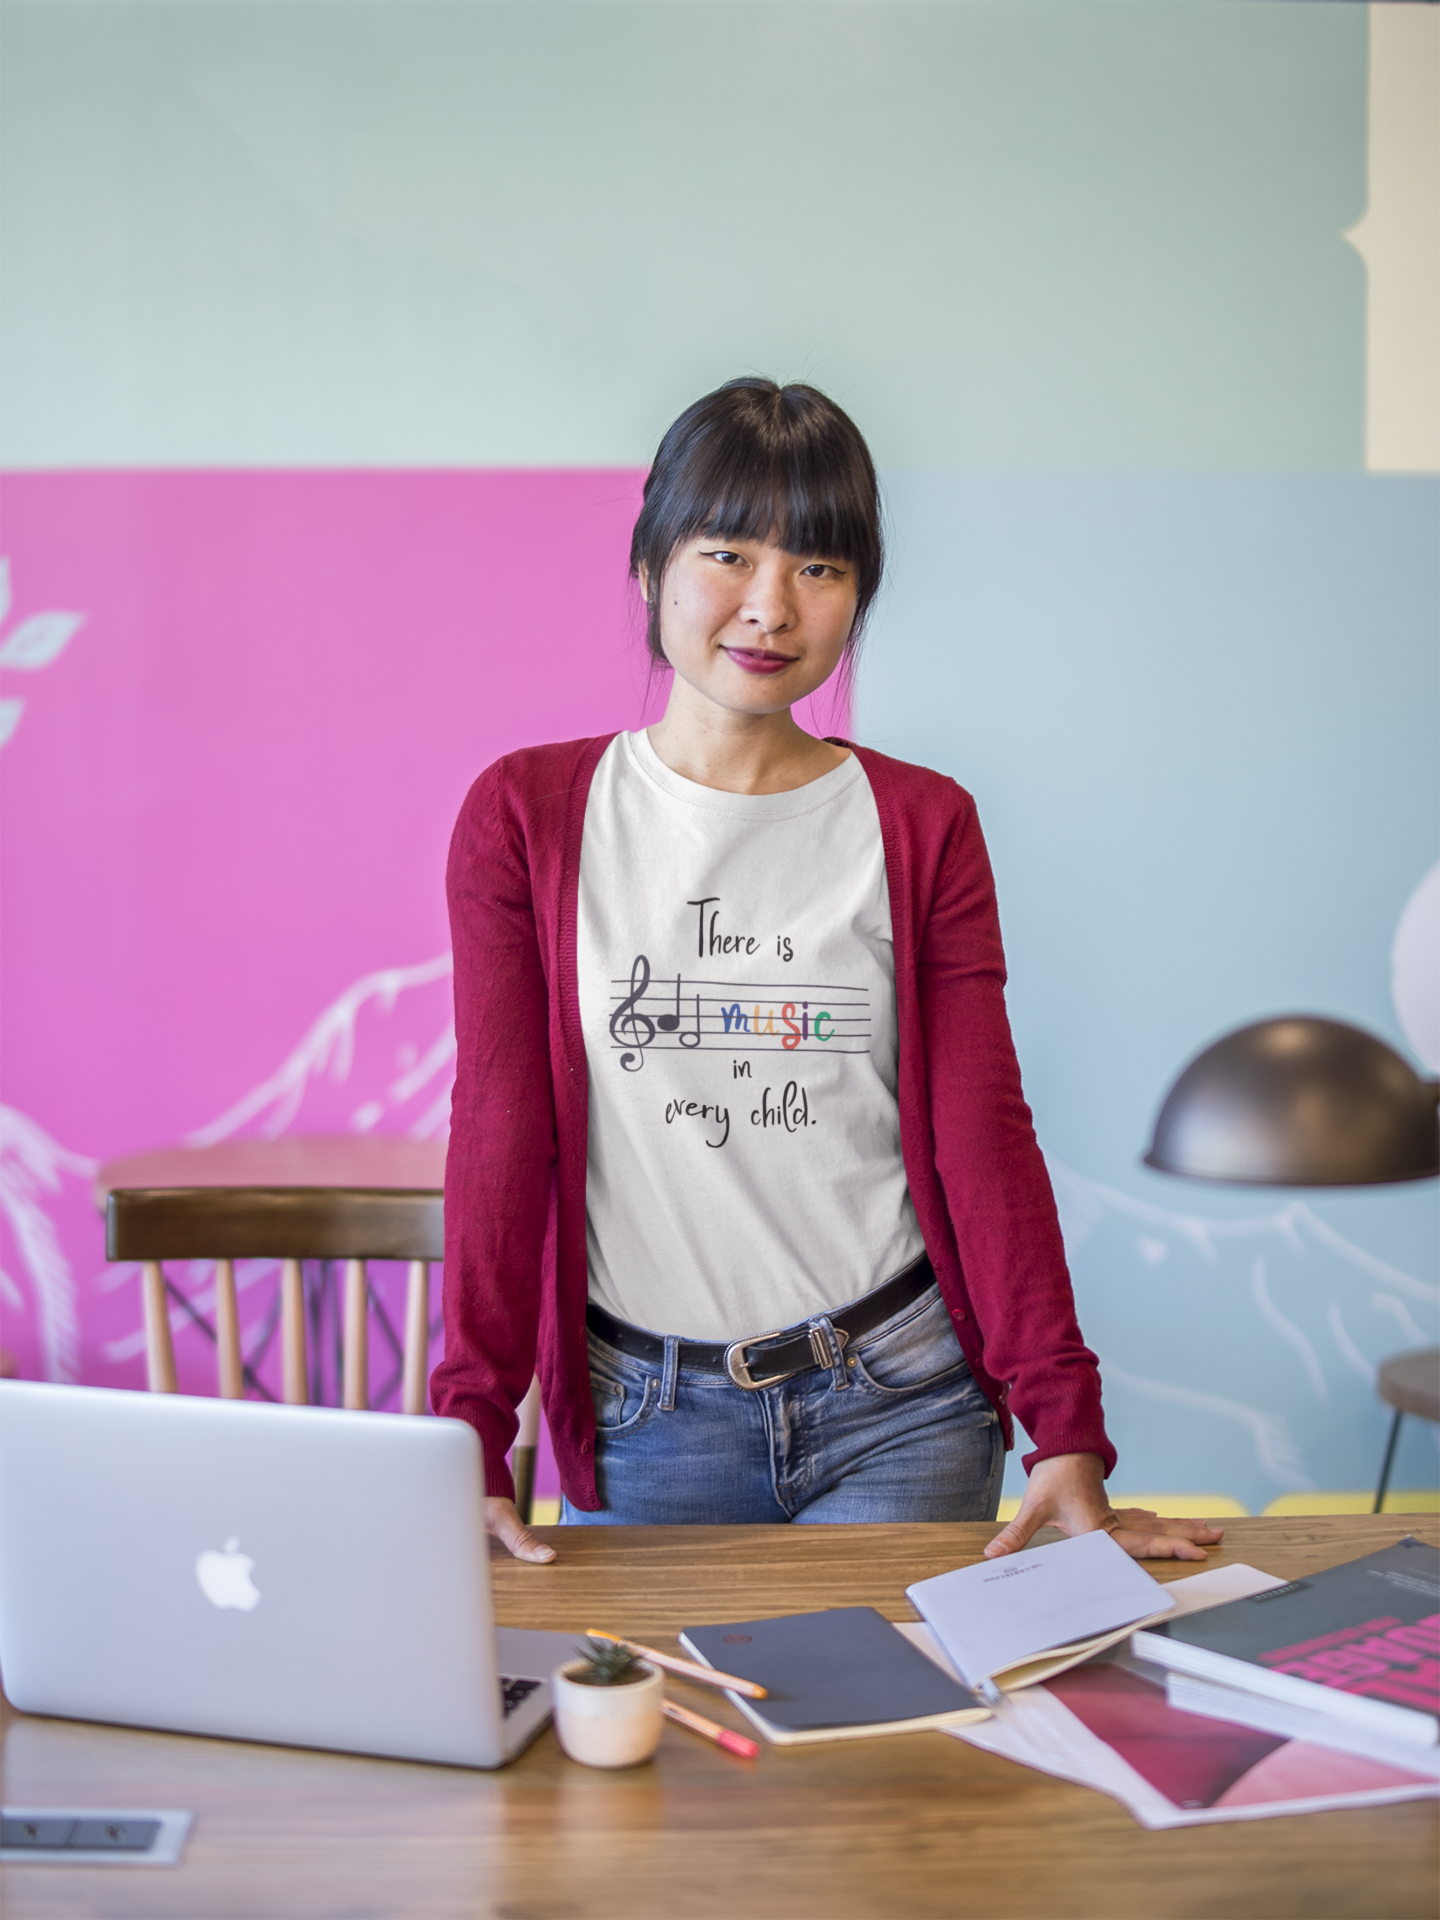 asian-girl-leaning-over-a-desk-wearing-a-t-shirt-mockup-at-the-office-a20432